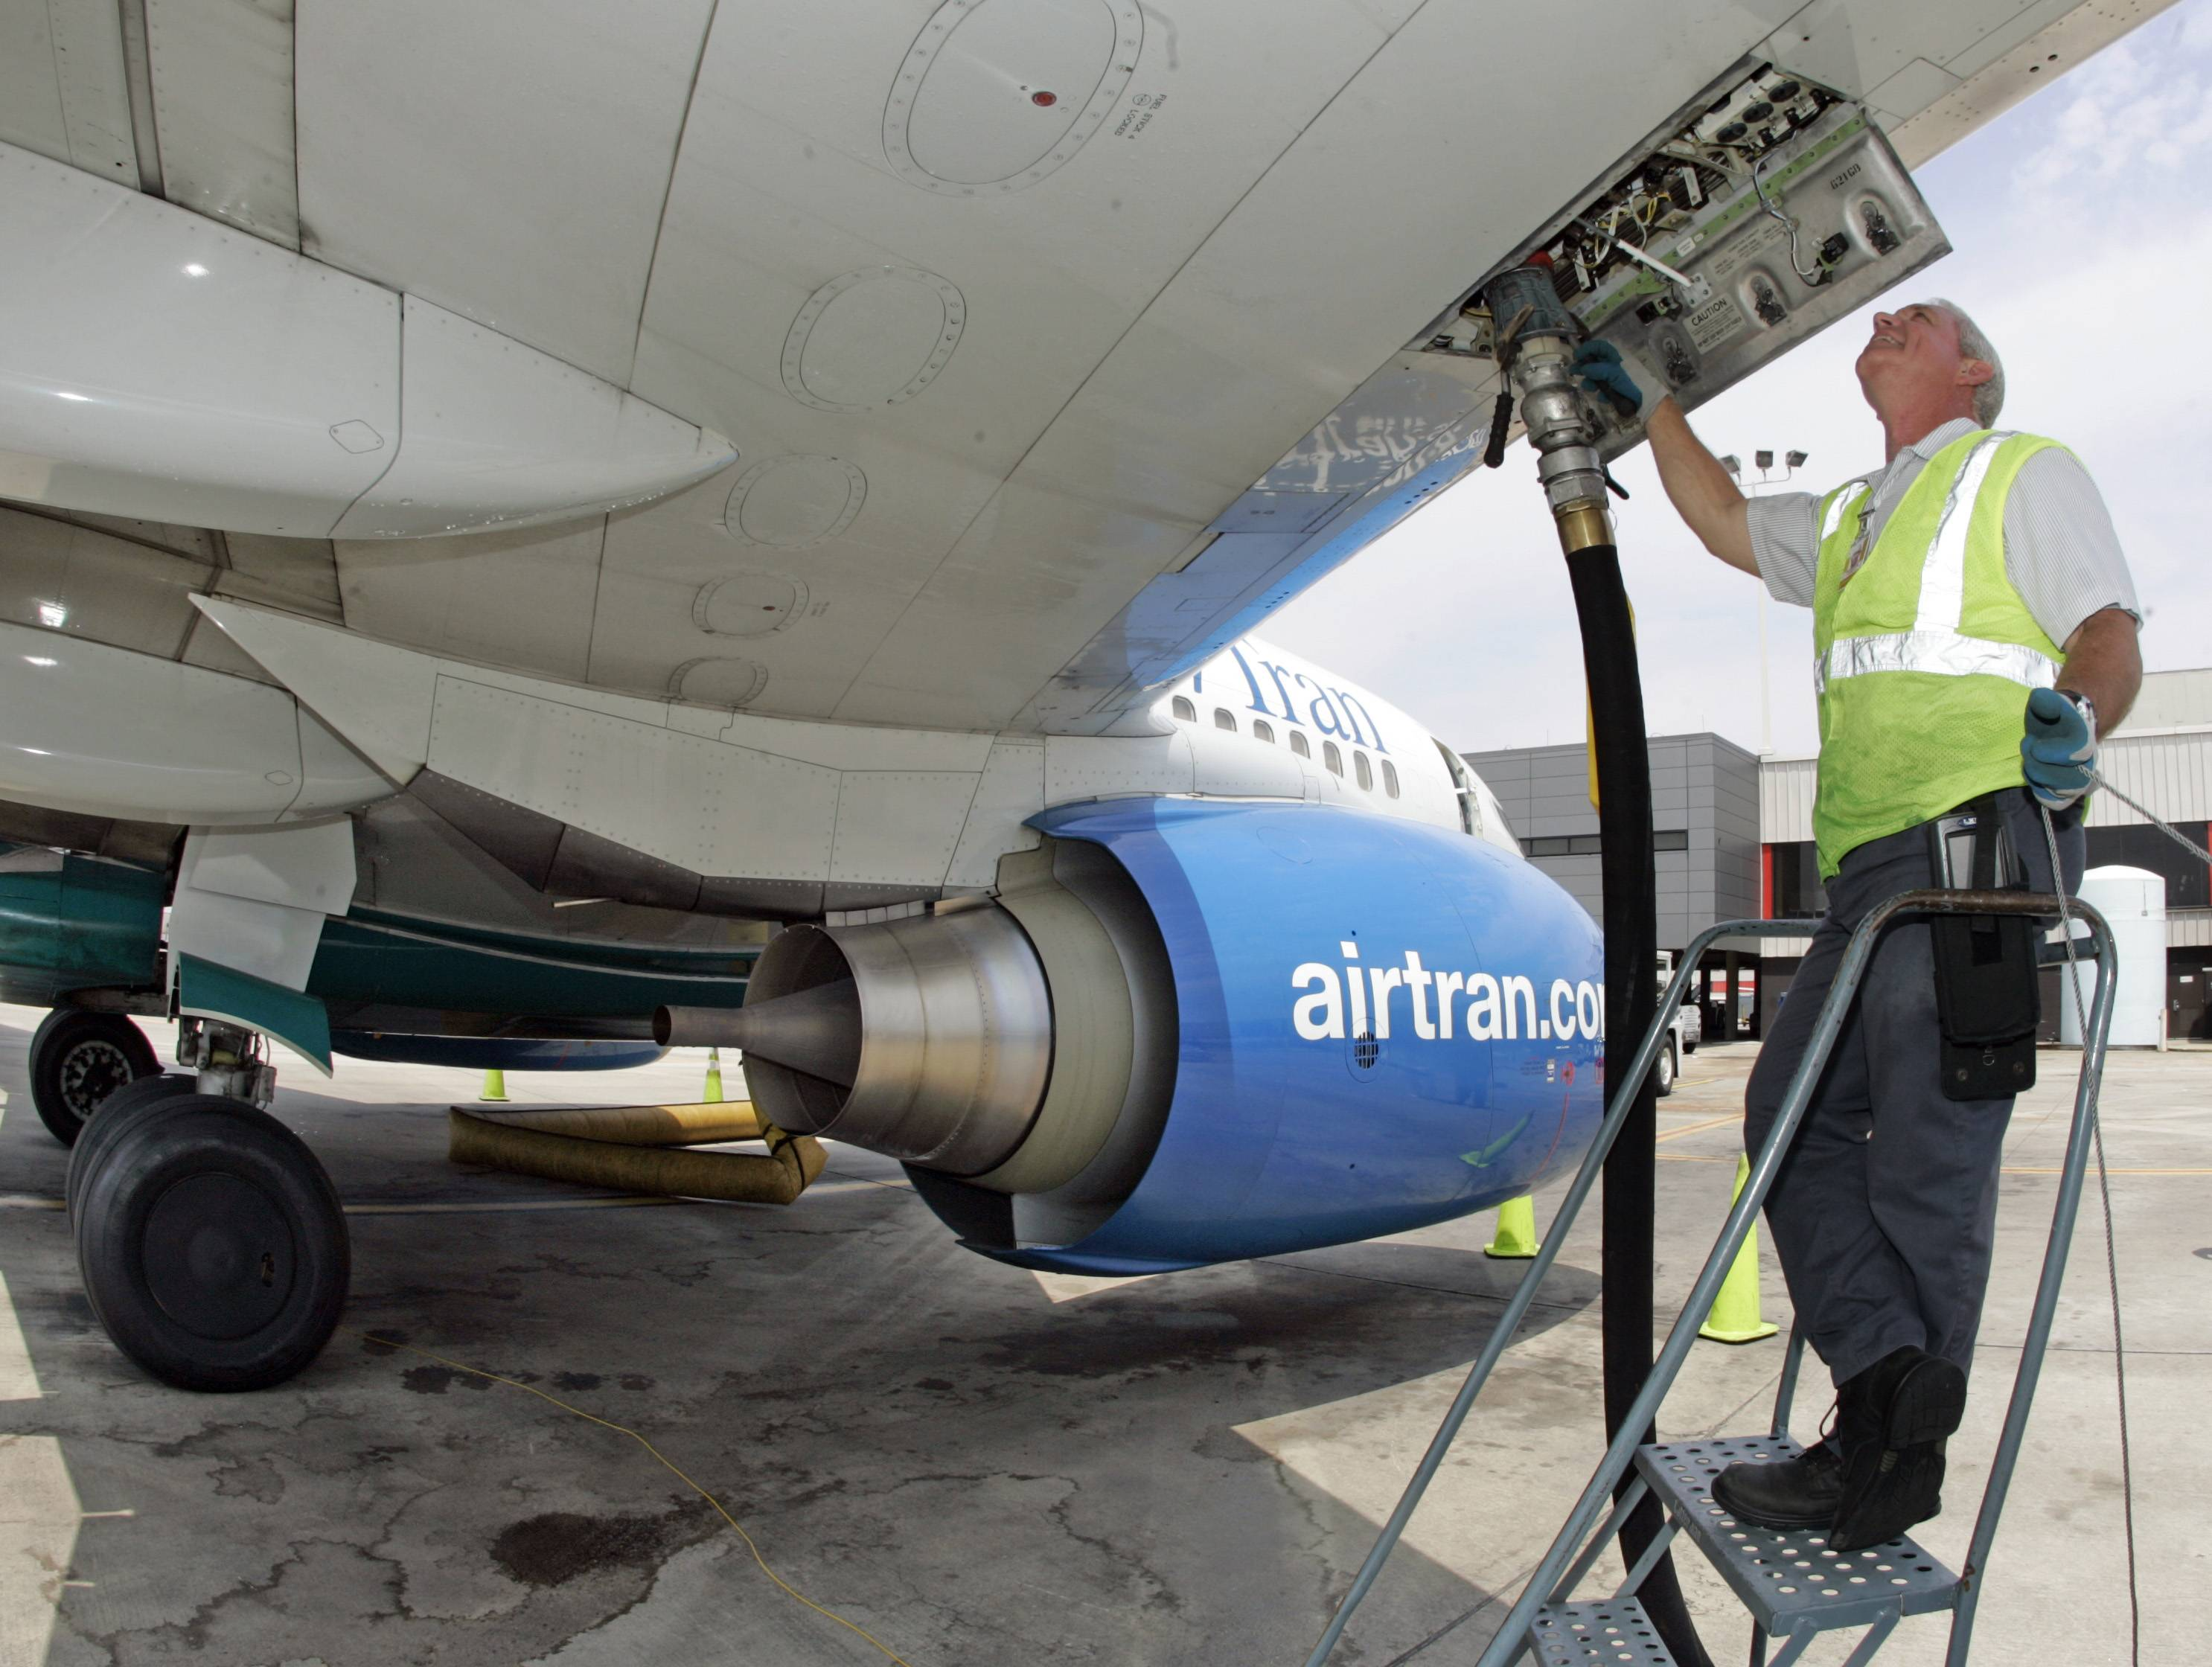 Taxes from the sale of aviation fuel should fund airports, an FAA rule requires. Illinois is adjusting to the regulation that will affect some municipalities.